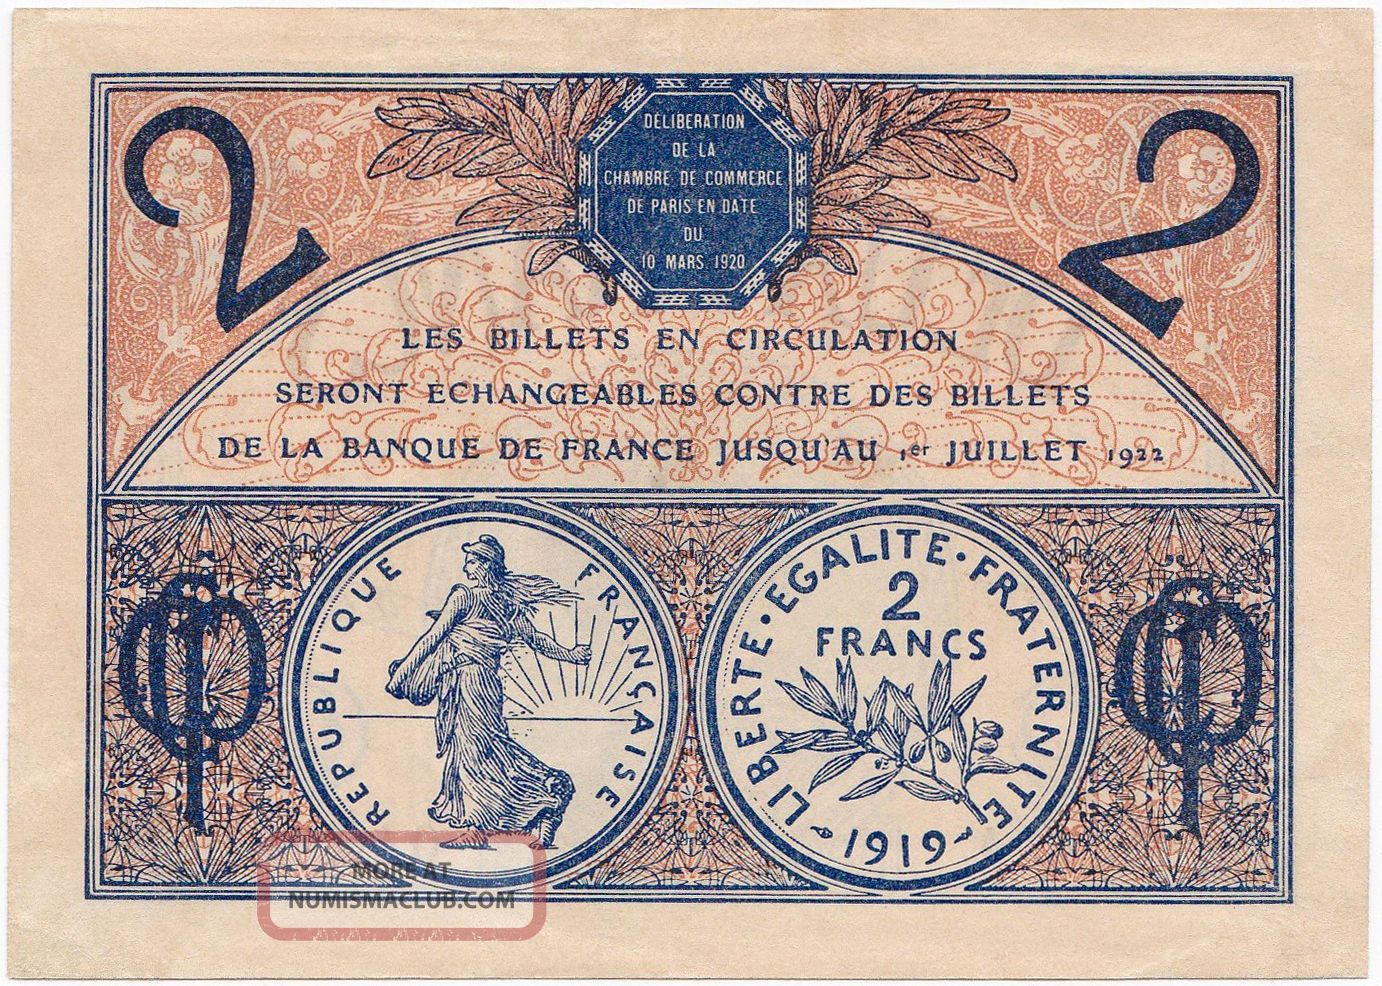 France 2 francs 1919 1922 xf chambre de commerce de paris for Chambre de commerce de france